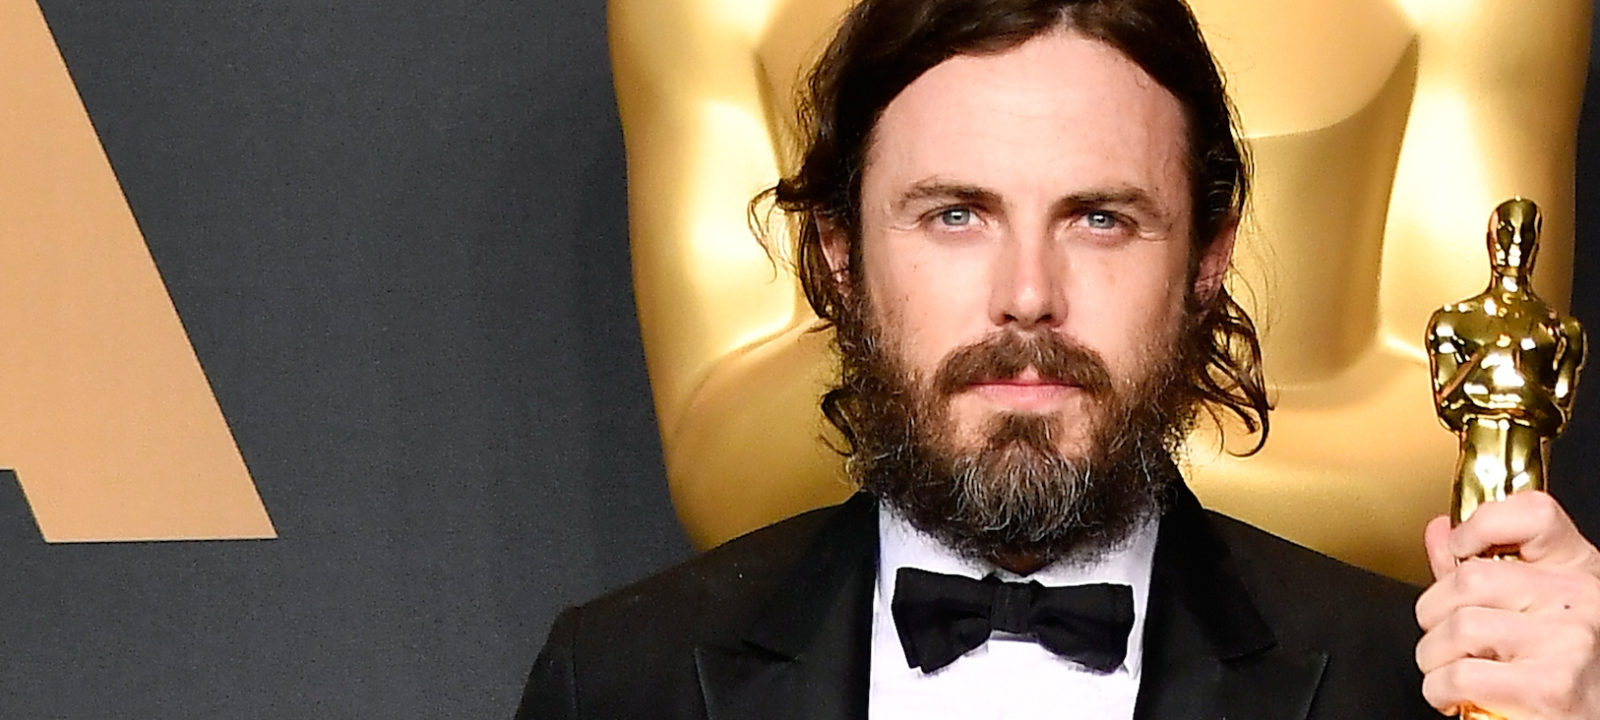 Actor Casey Affleck, winner of Best Actor for 'Manchester by the Sea' poses in the press room during the 89th Annual Academy Awards at Hollywood & Highland Center on February 26, 2017 in Hollywood, California.